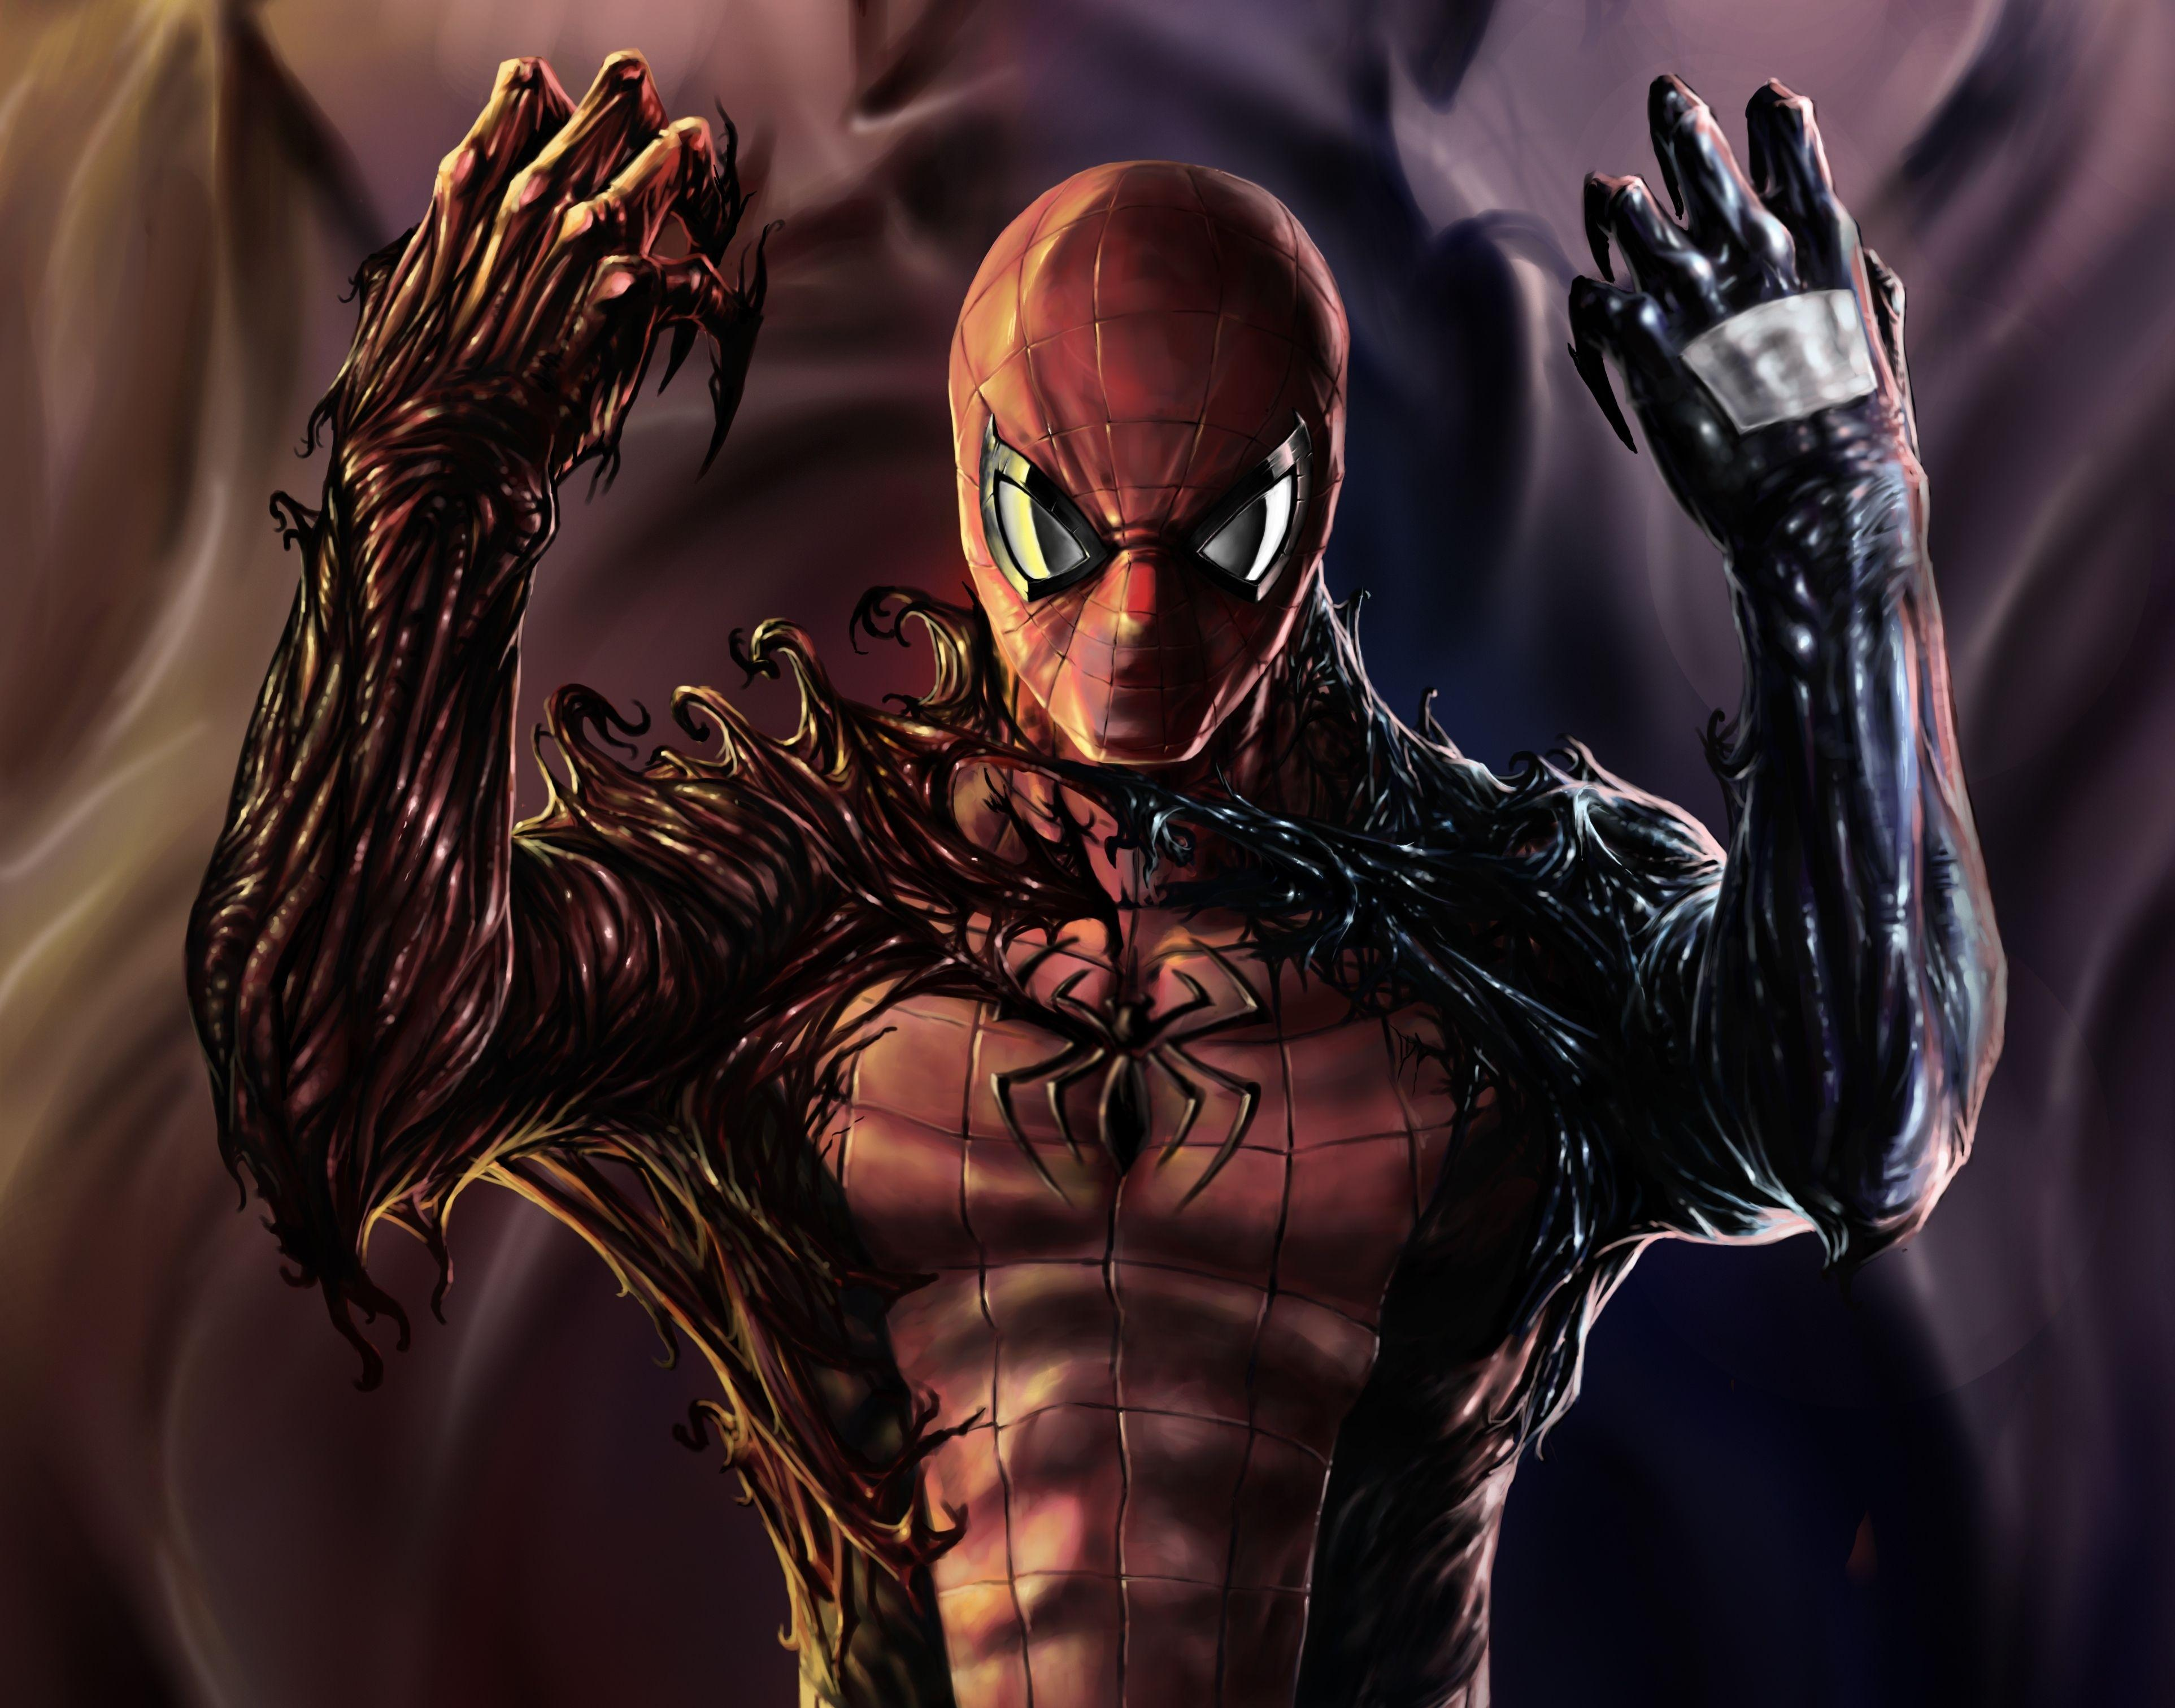 Spider Man Vs Venom Wallpapers Hd Wallpaper Cave